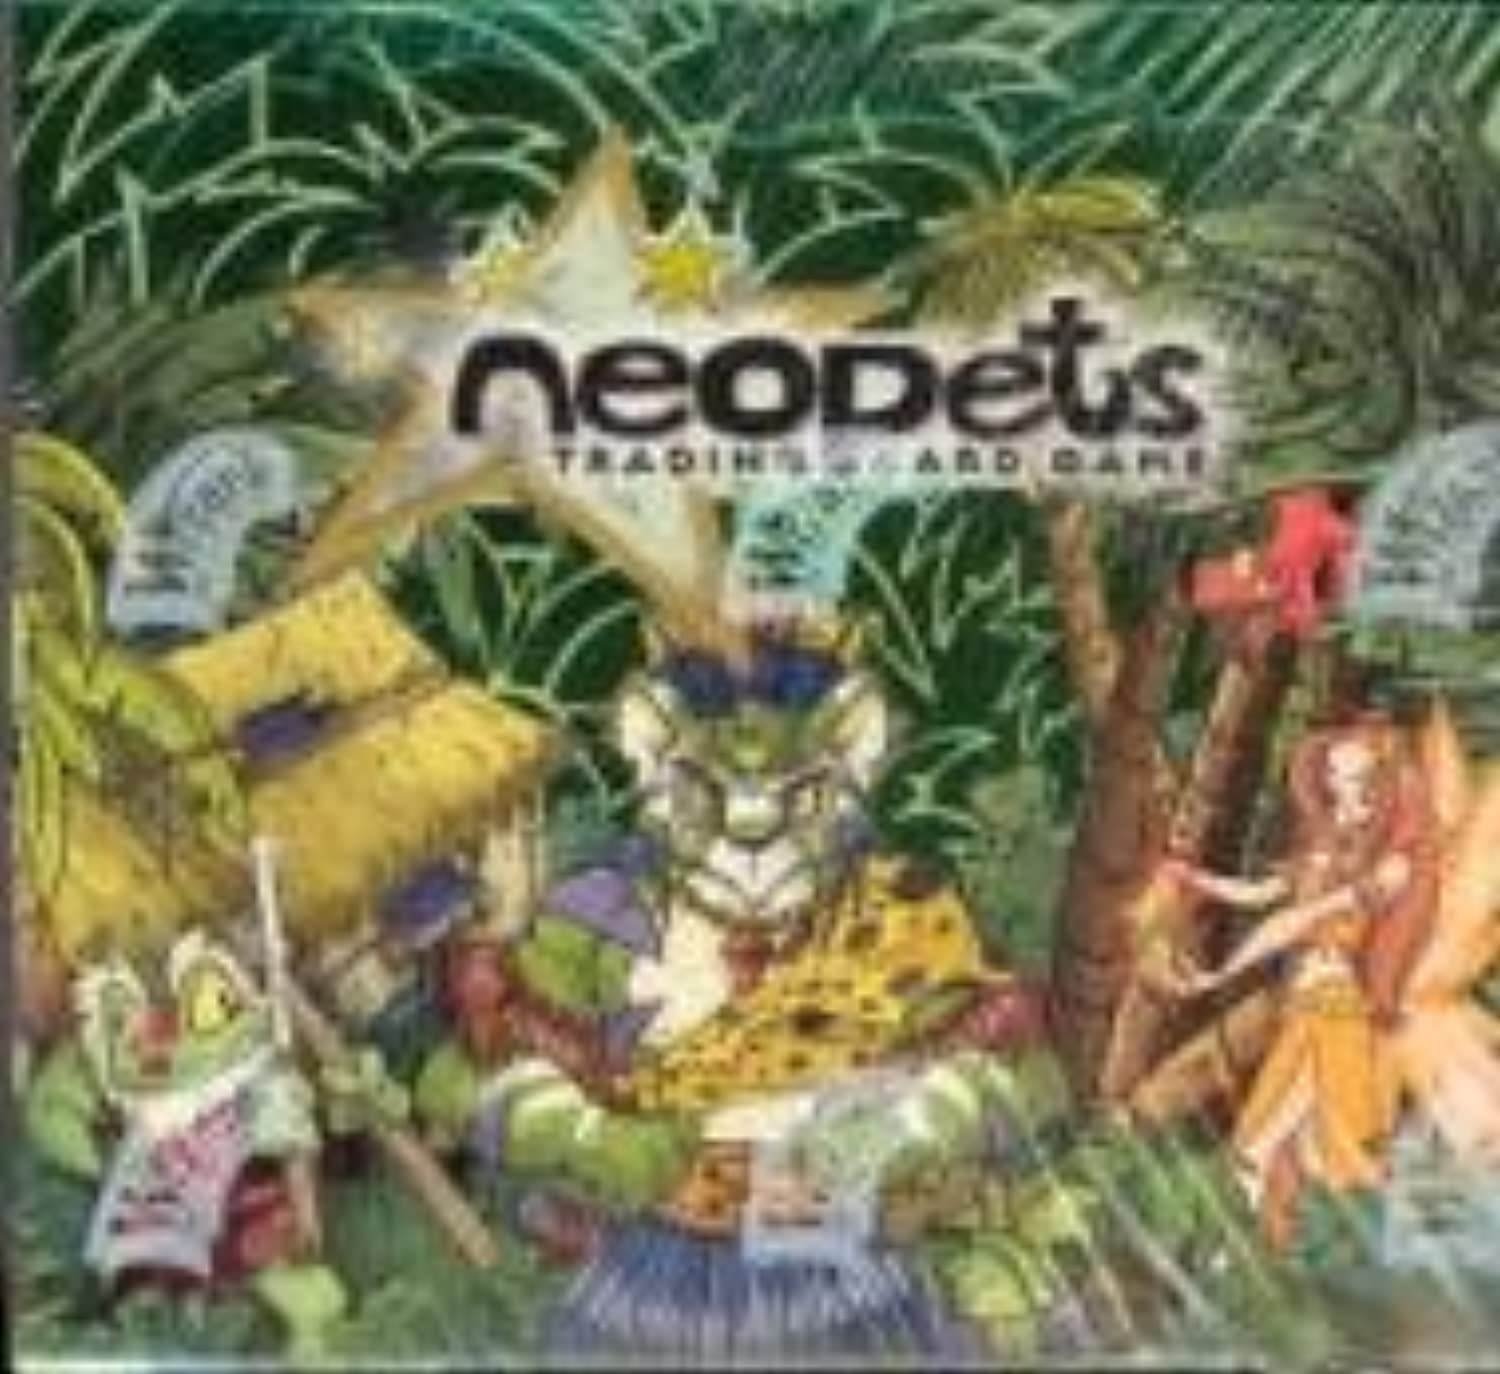 Neopets Neopets Neopets Trading Card Game Secrets of Mystery